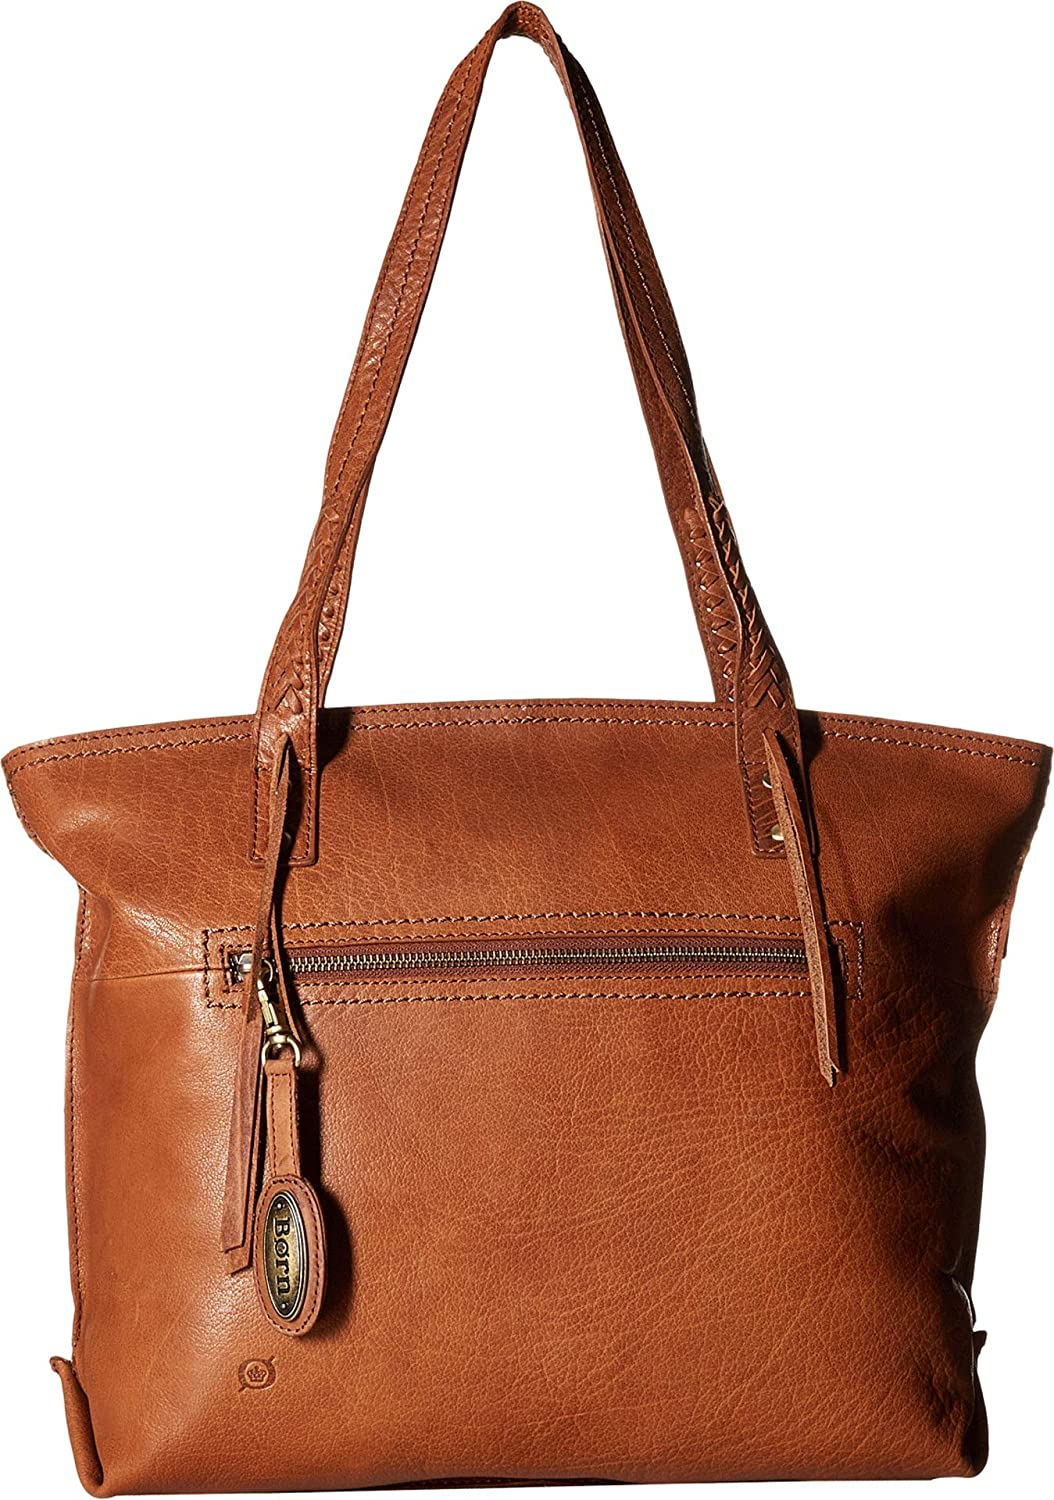 Born Womens Delamar Tote Chestnut One Size